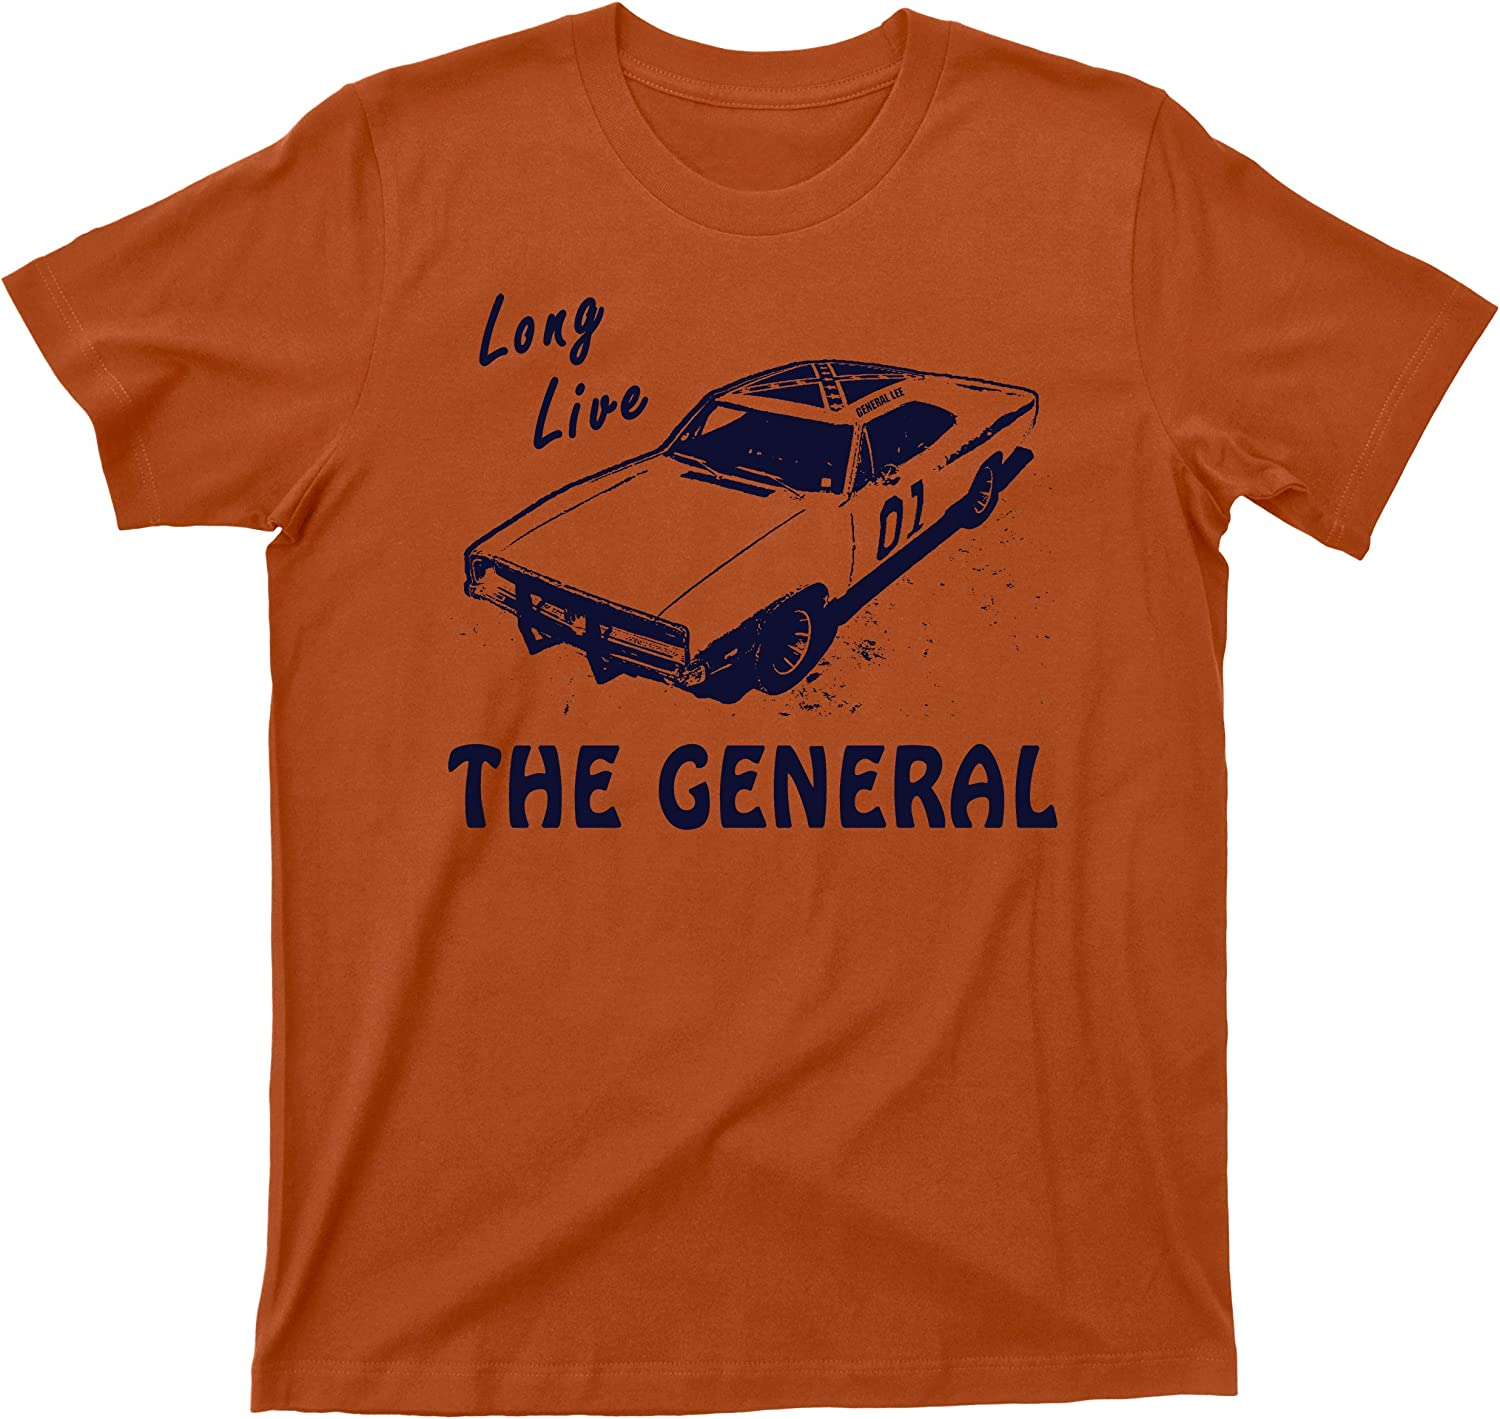 Long Live The General T Shirt 1969 Charger Dukes of Hazzard Tee